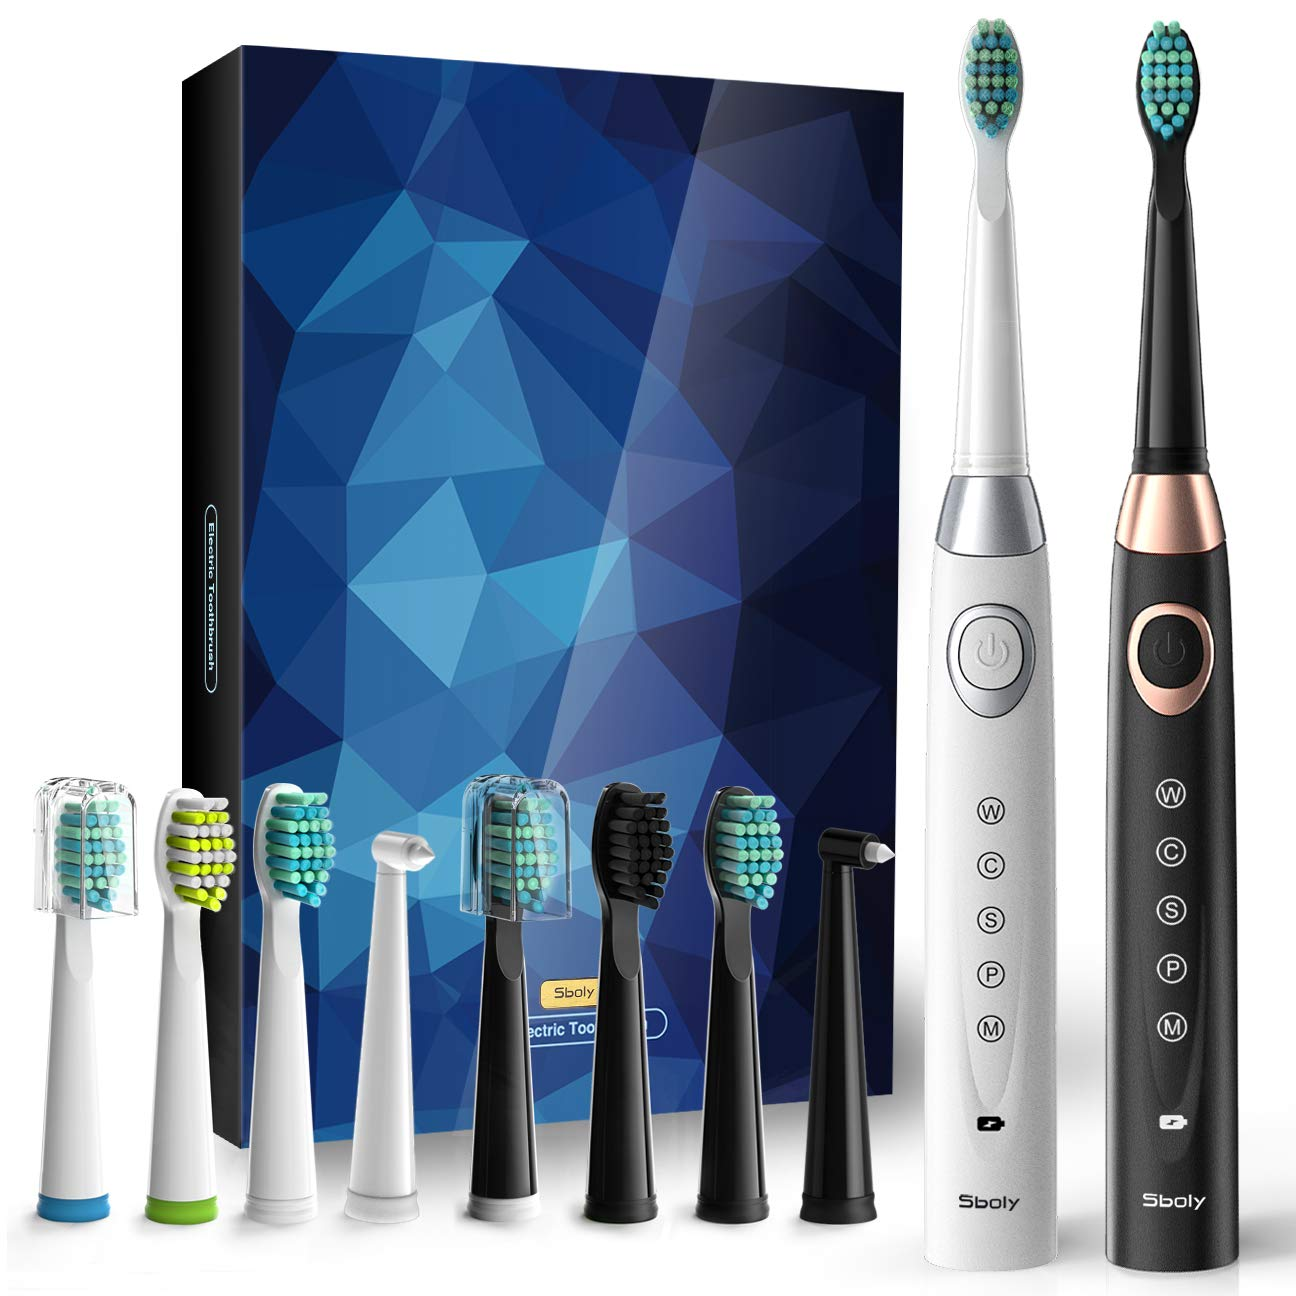 2 Sonic Electric Toothbrushes 5 Modes 8 Brush heads USB Fast Charge Powered Toothbrush Last for 30 Days, Built-in Smart Timer Rechargeable Toothbrushes for Adults and Kids 1 Black And 1 White